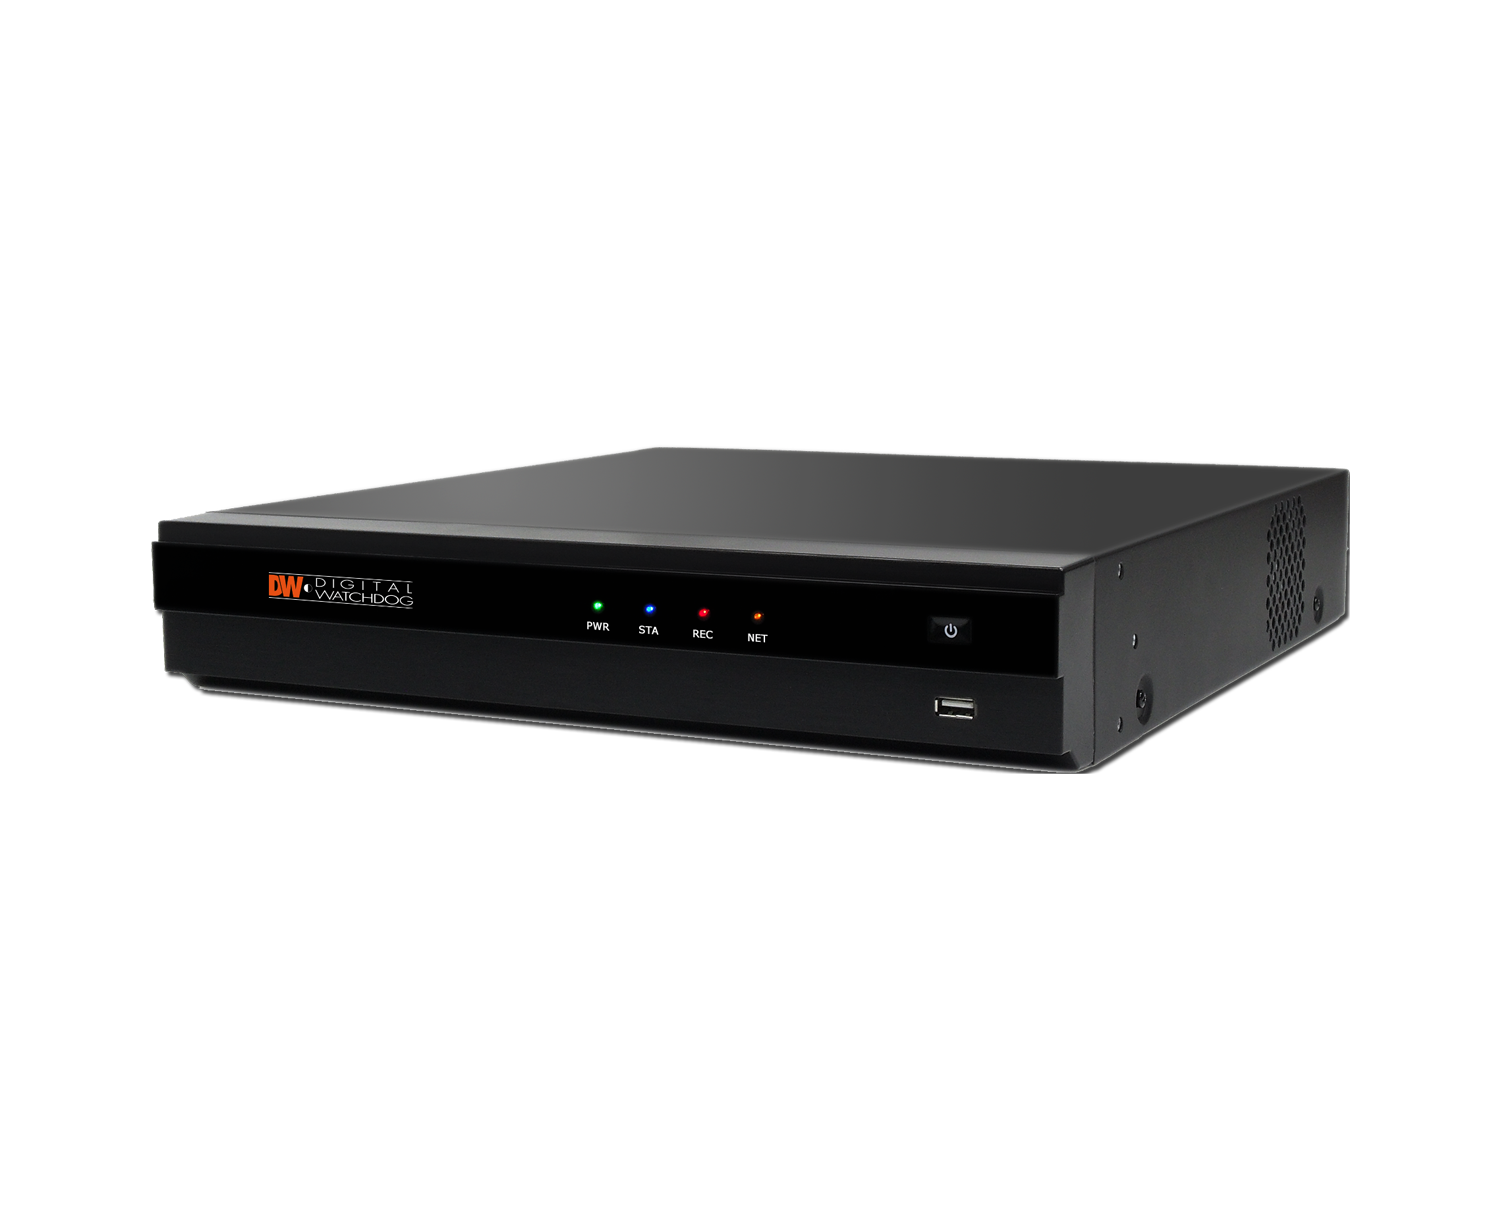 DW-VP123T8P DIGITAL WATCHDOG 3TB VMAX IP PLUS NVR ADVANCED LINUX-BASED EMBEDDED NVR SUPPORTS 12 2.1MP CAMERAS@30FPS 1080P 8 PORT POE SWITCH BUILT IN